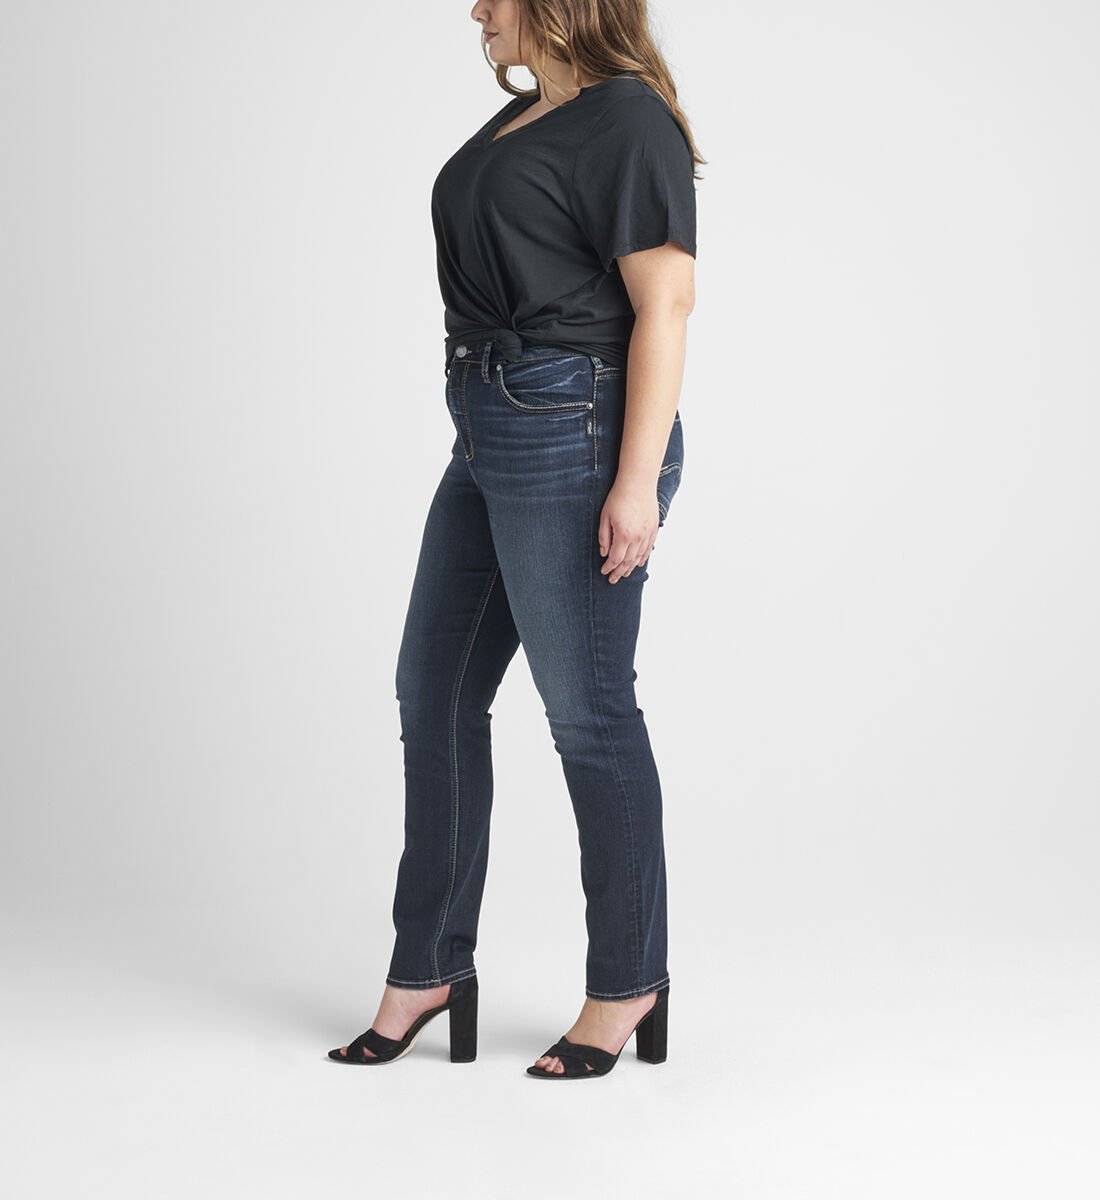 Avery High Rise Straight Leg Jeans Plus Size Side